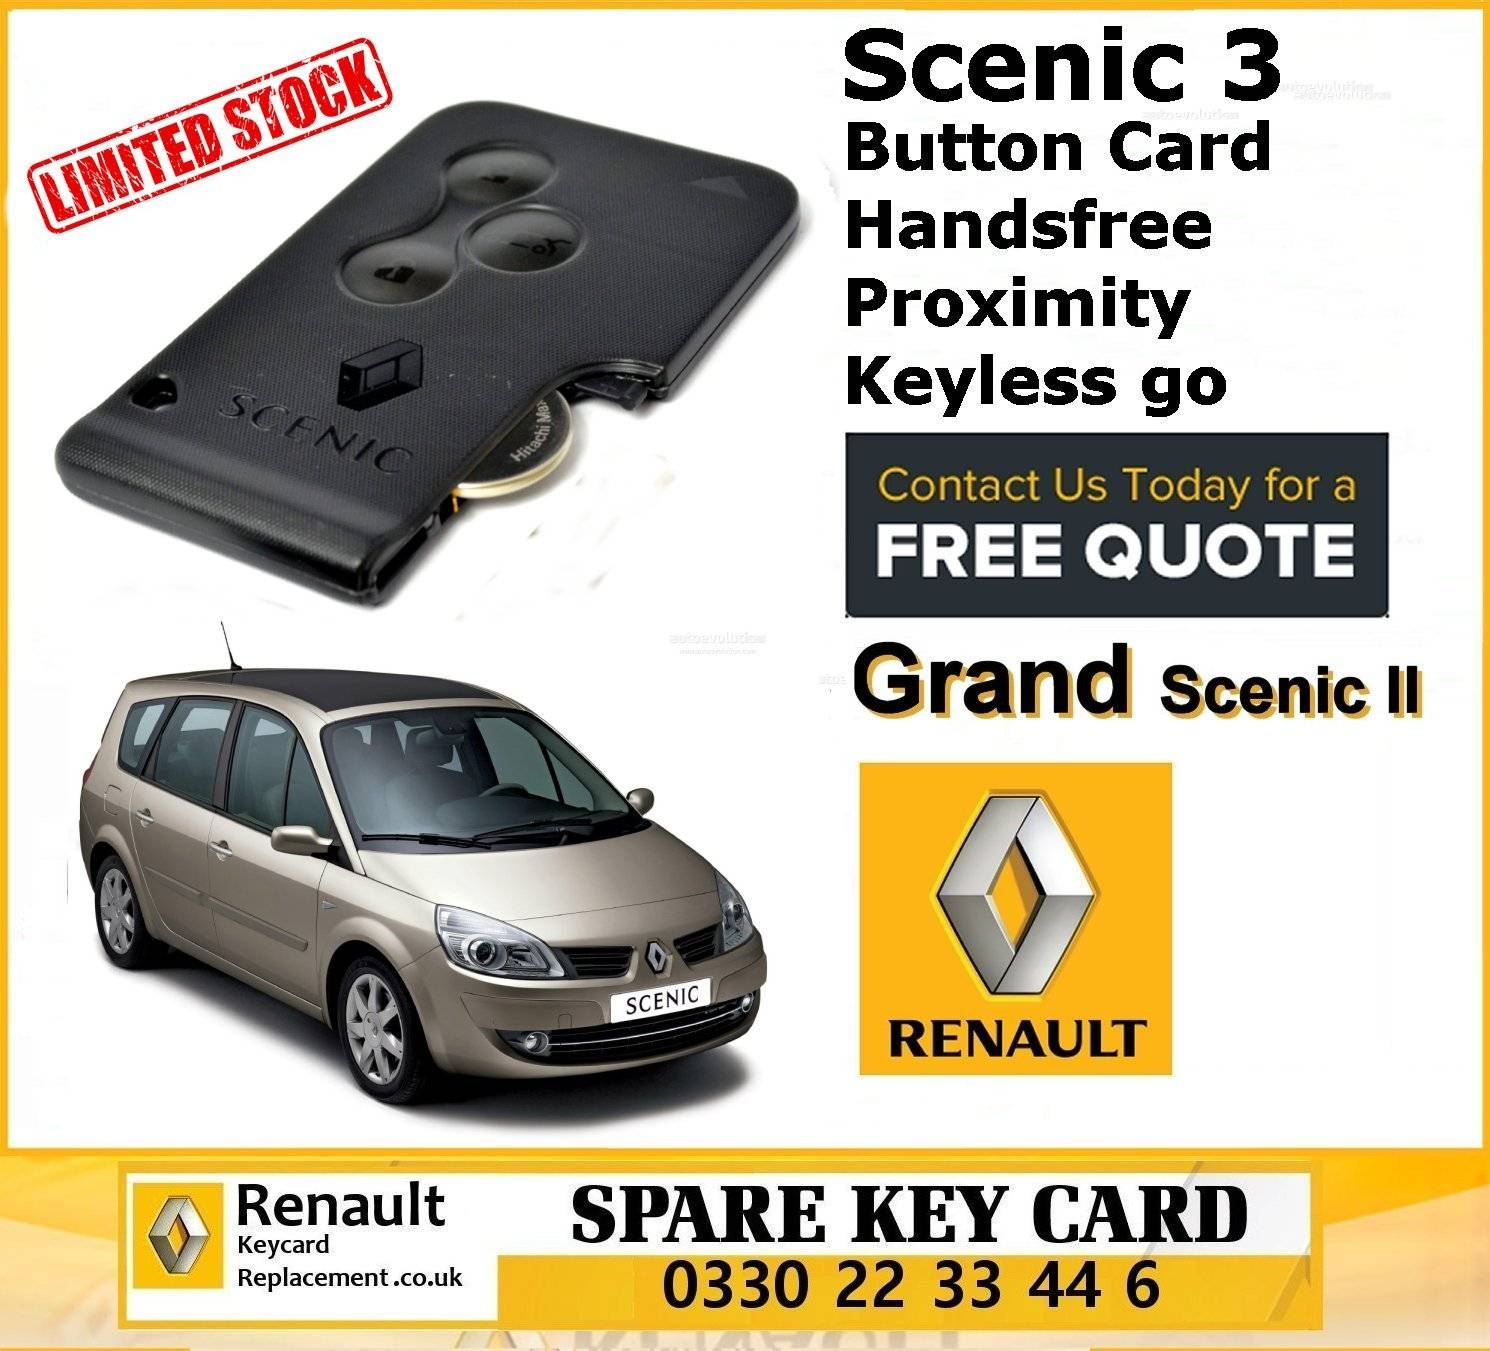 OEM Renault Scenic 3 Button Card Handsfree/Proximity/Keyless